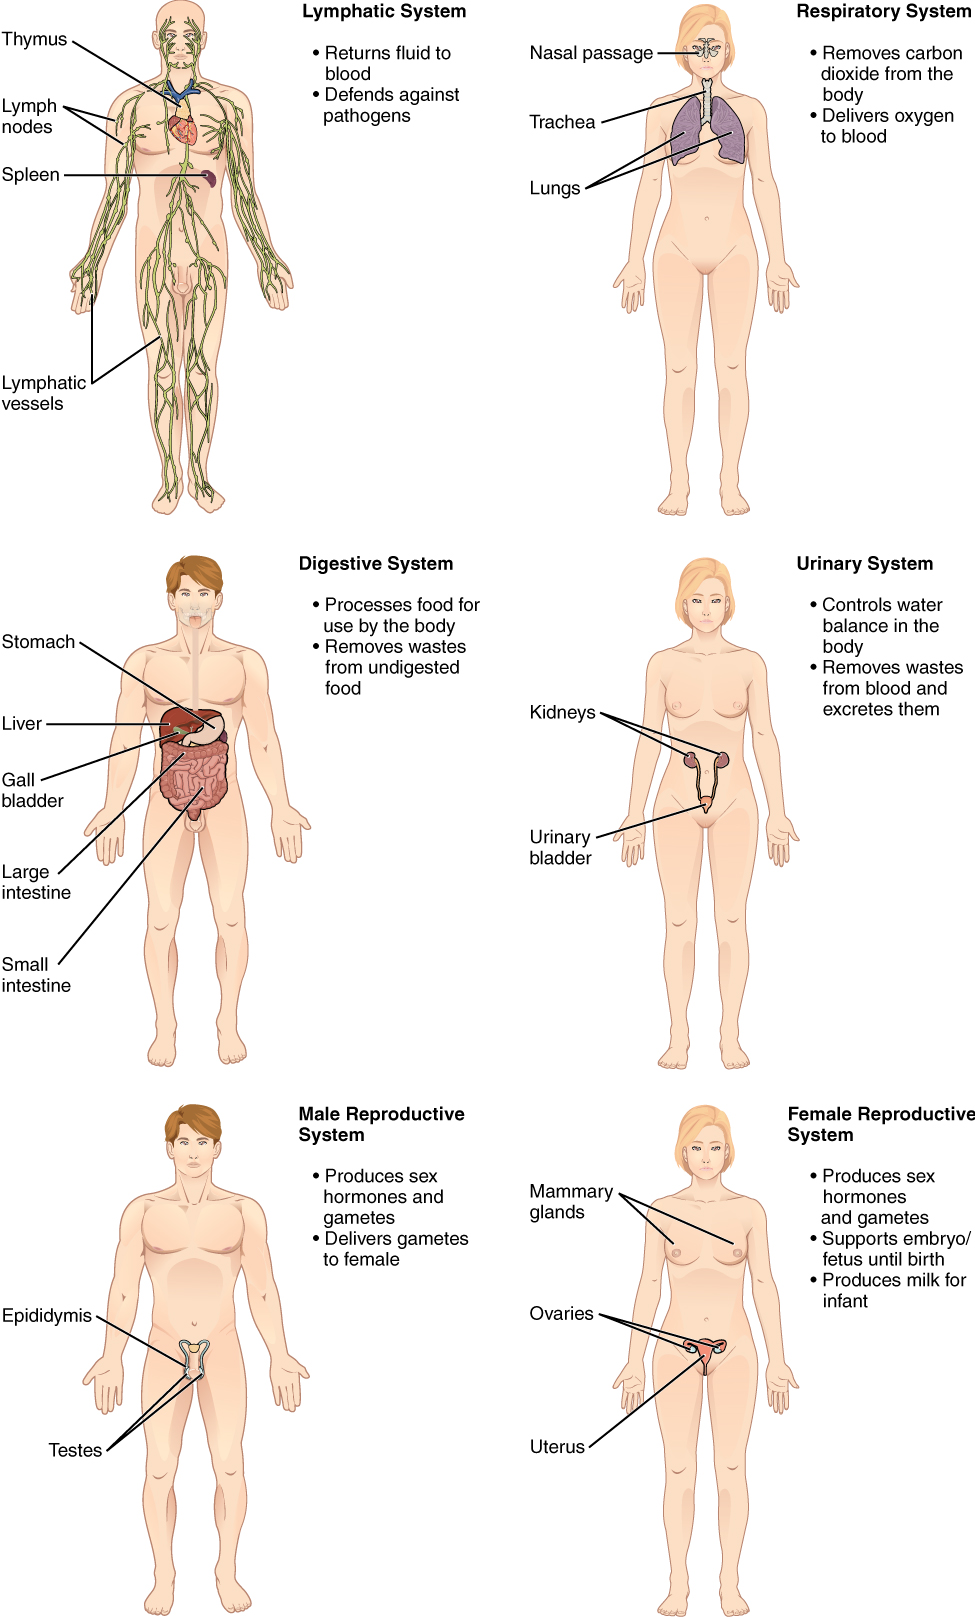 hight resolution of the lymphatic system returns fluid to the blood and defends against pathogens the lymphatic system